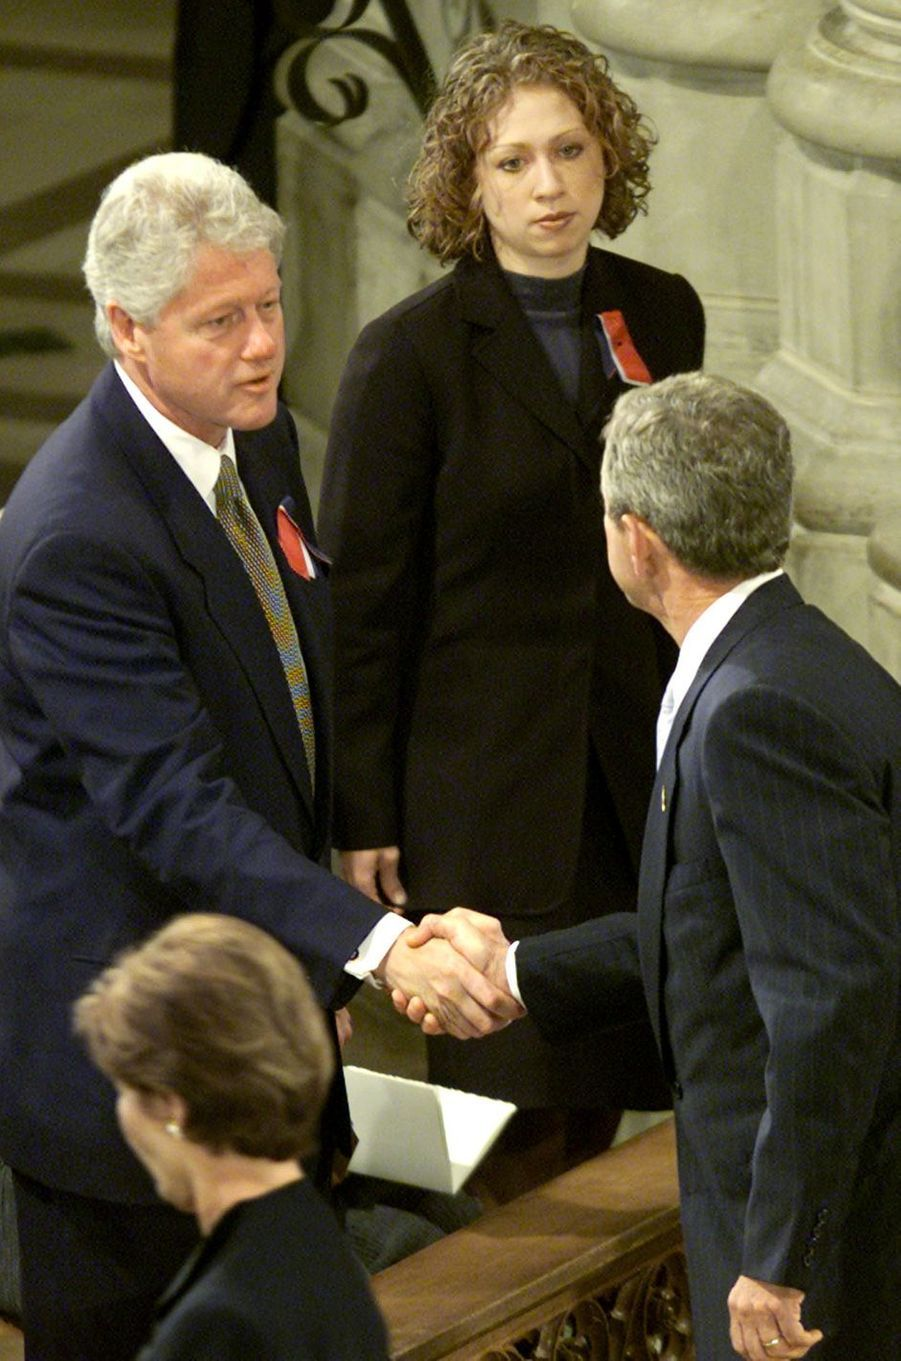 Bill et Chelsea Clinton, en septembre 2001.